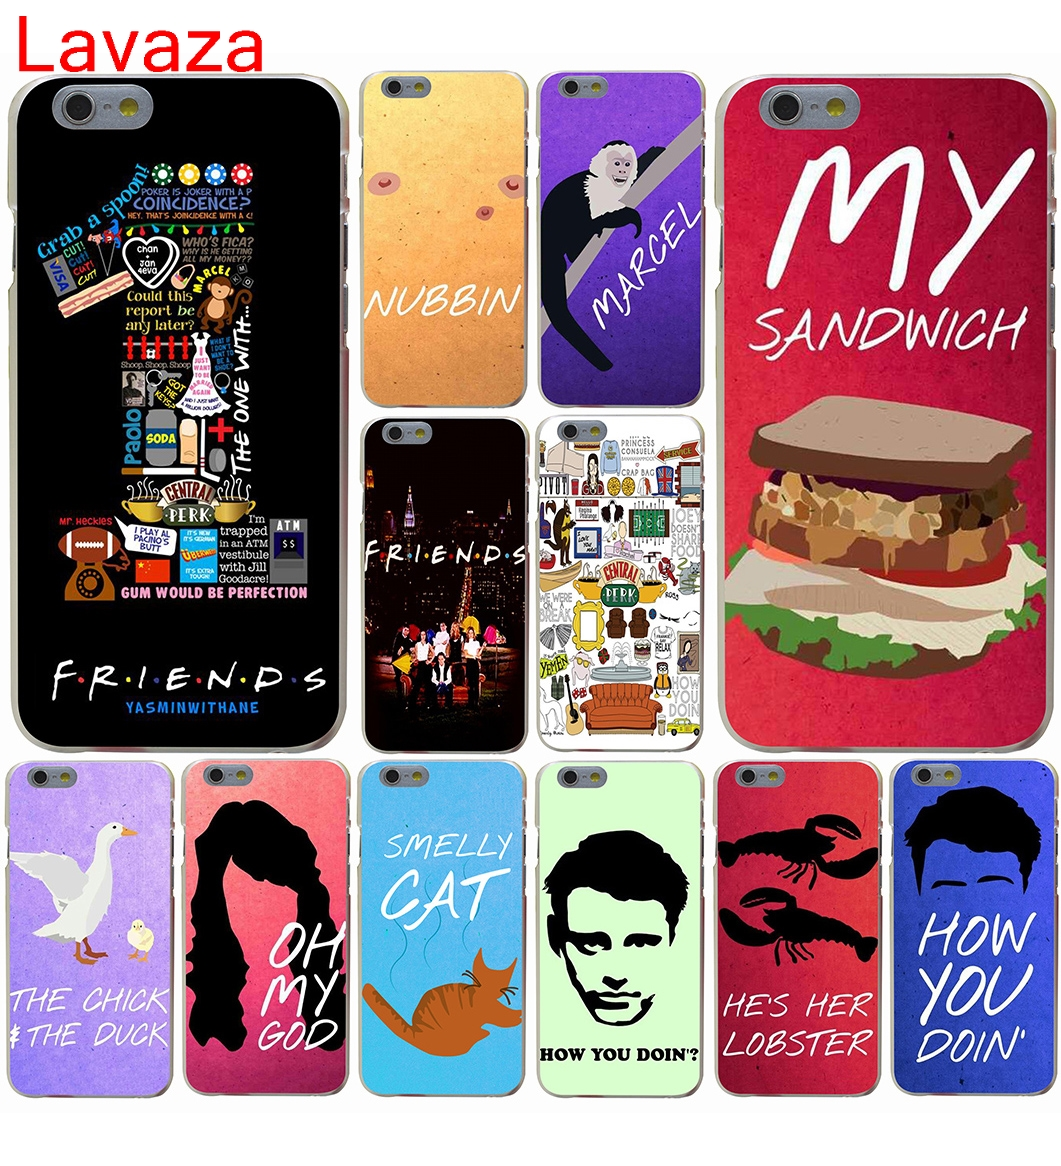 Lavaza <font><b>Friends</b></font> <font><b>TV</b></font> <font><b>Show</b></font> Series Sitcom <font><b>Phone</b></font> Hard <font><b>Case</b></font> for iphone 4 4s 5c 5s 5 SE 6 6s 6/7/8 plus X for iphone 7 <font><b>case</b></font>